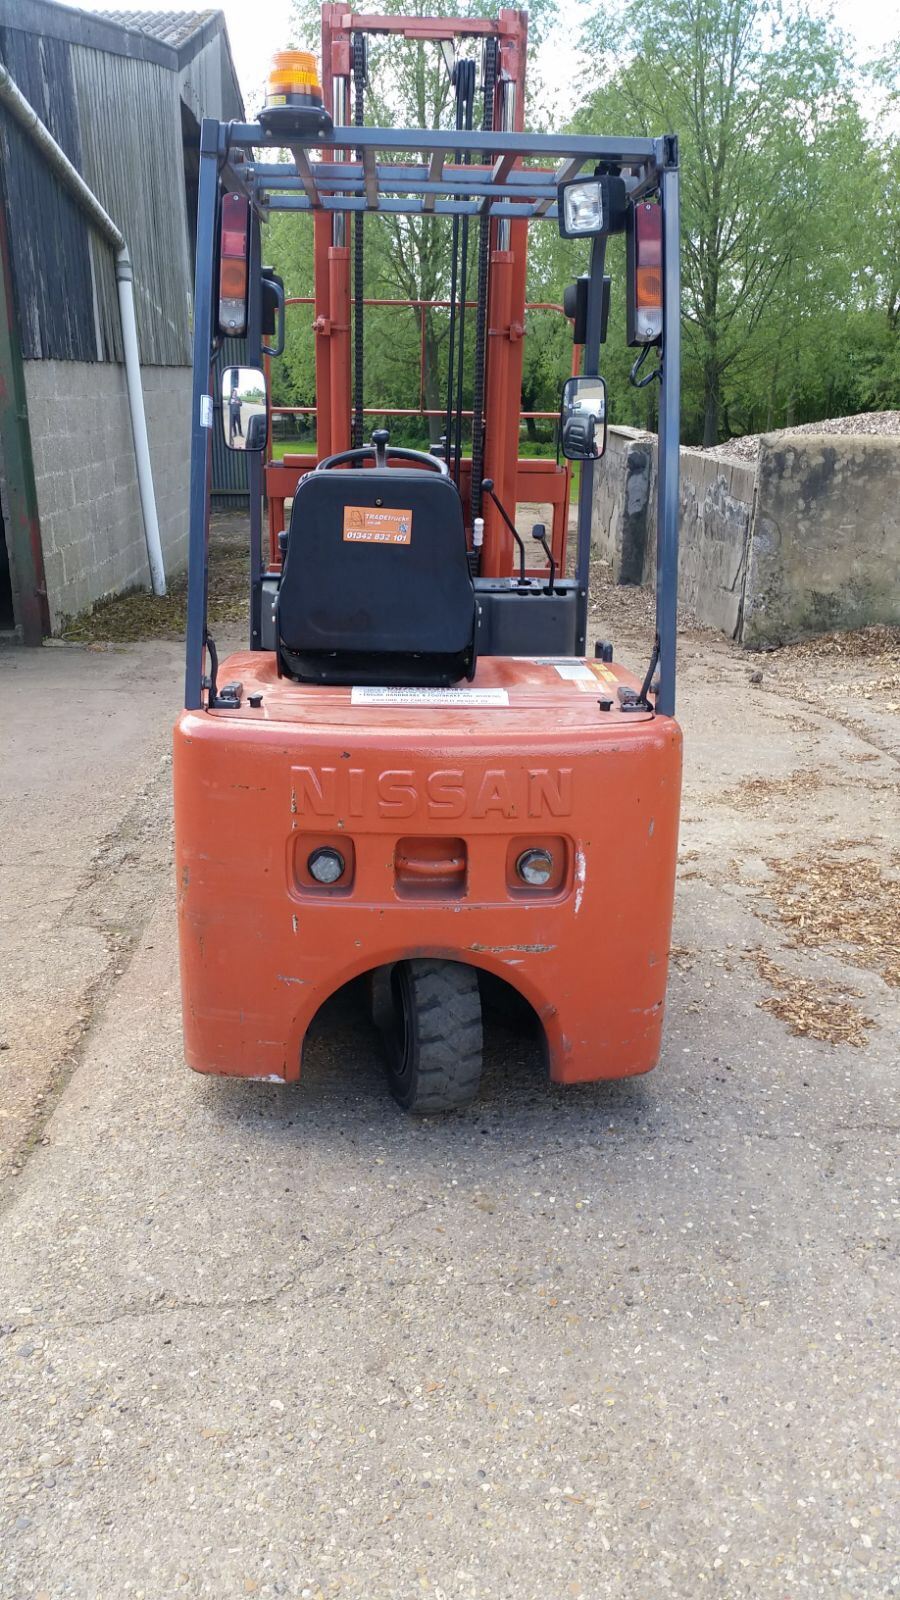 Nissan 1.5 Ton Electric Forklift